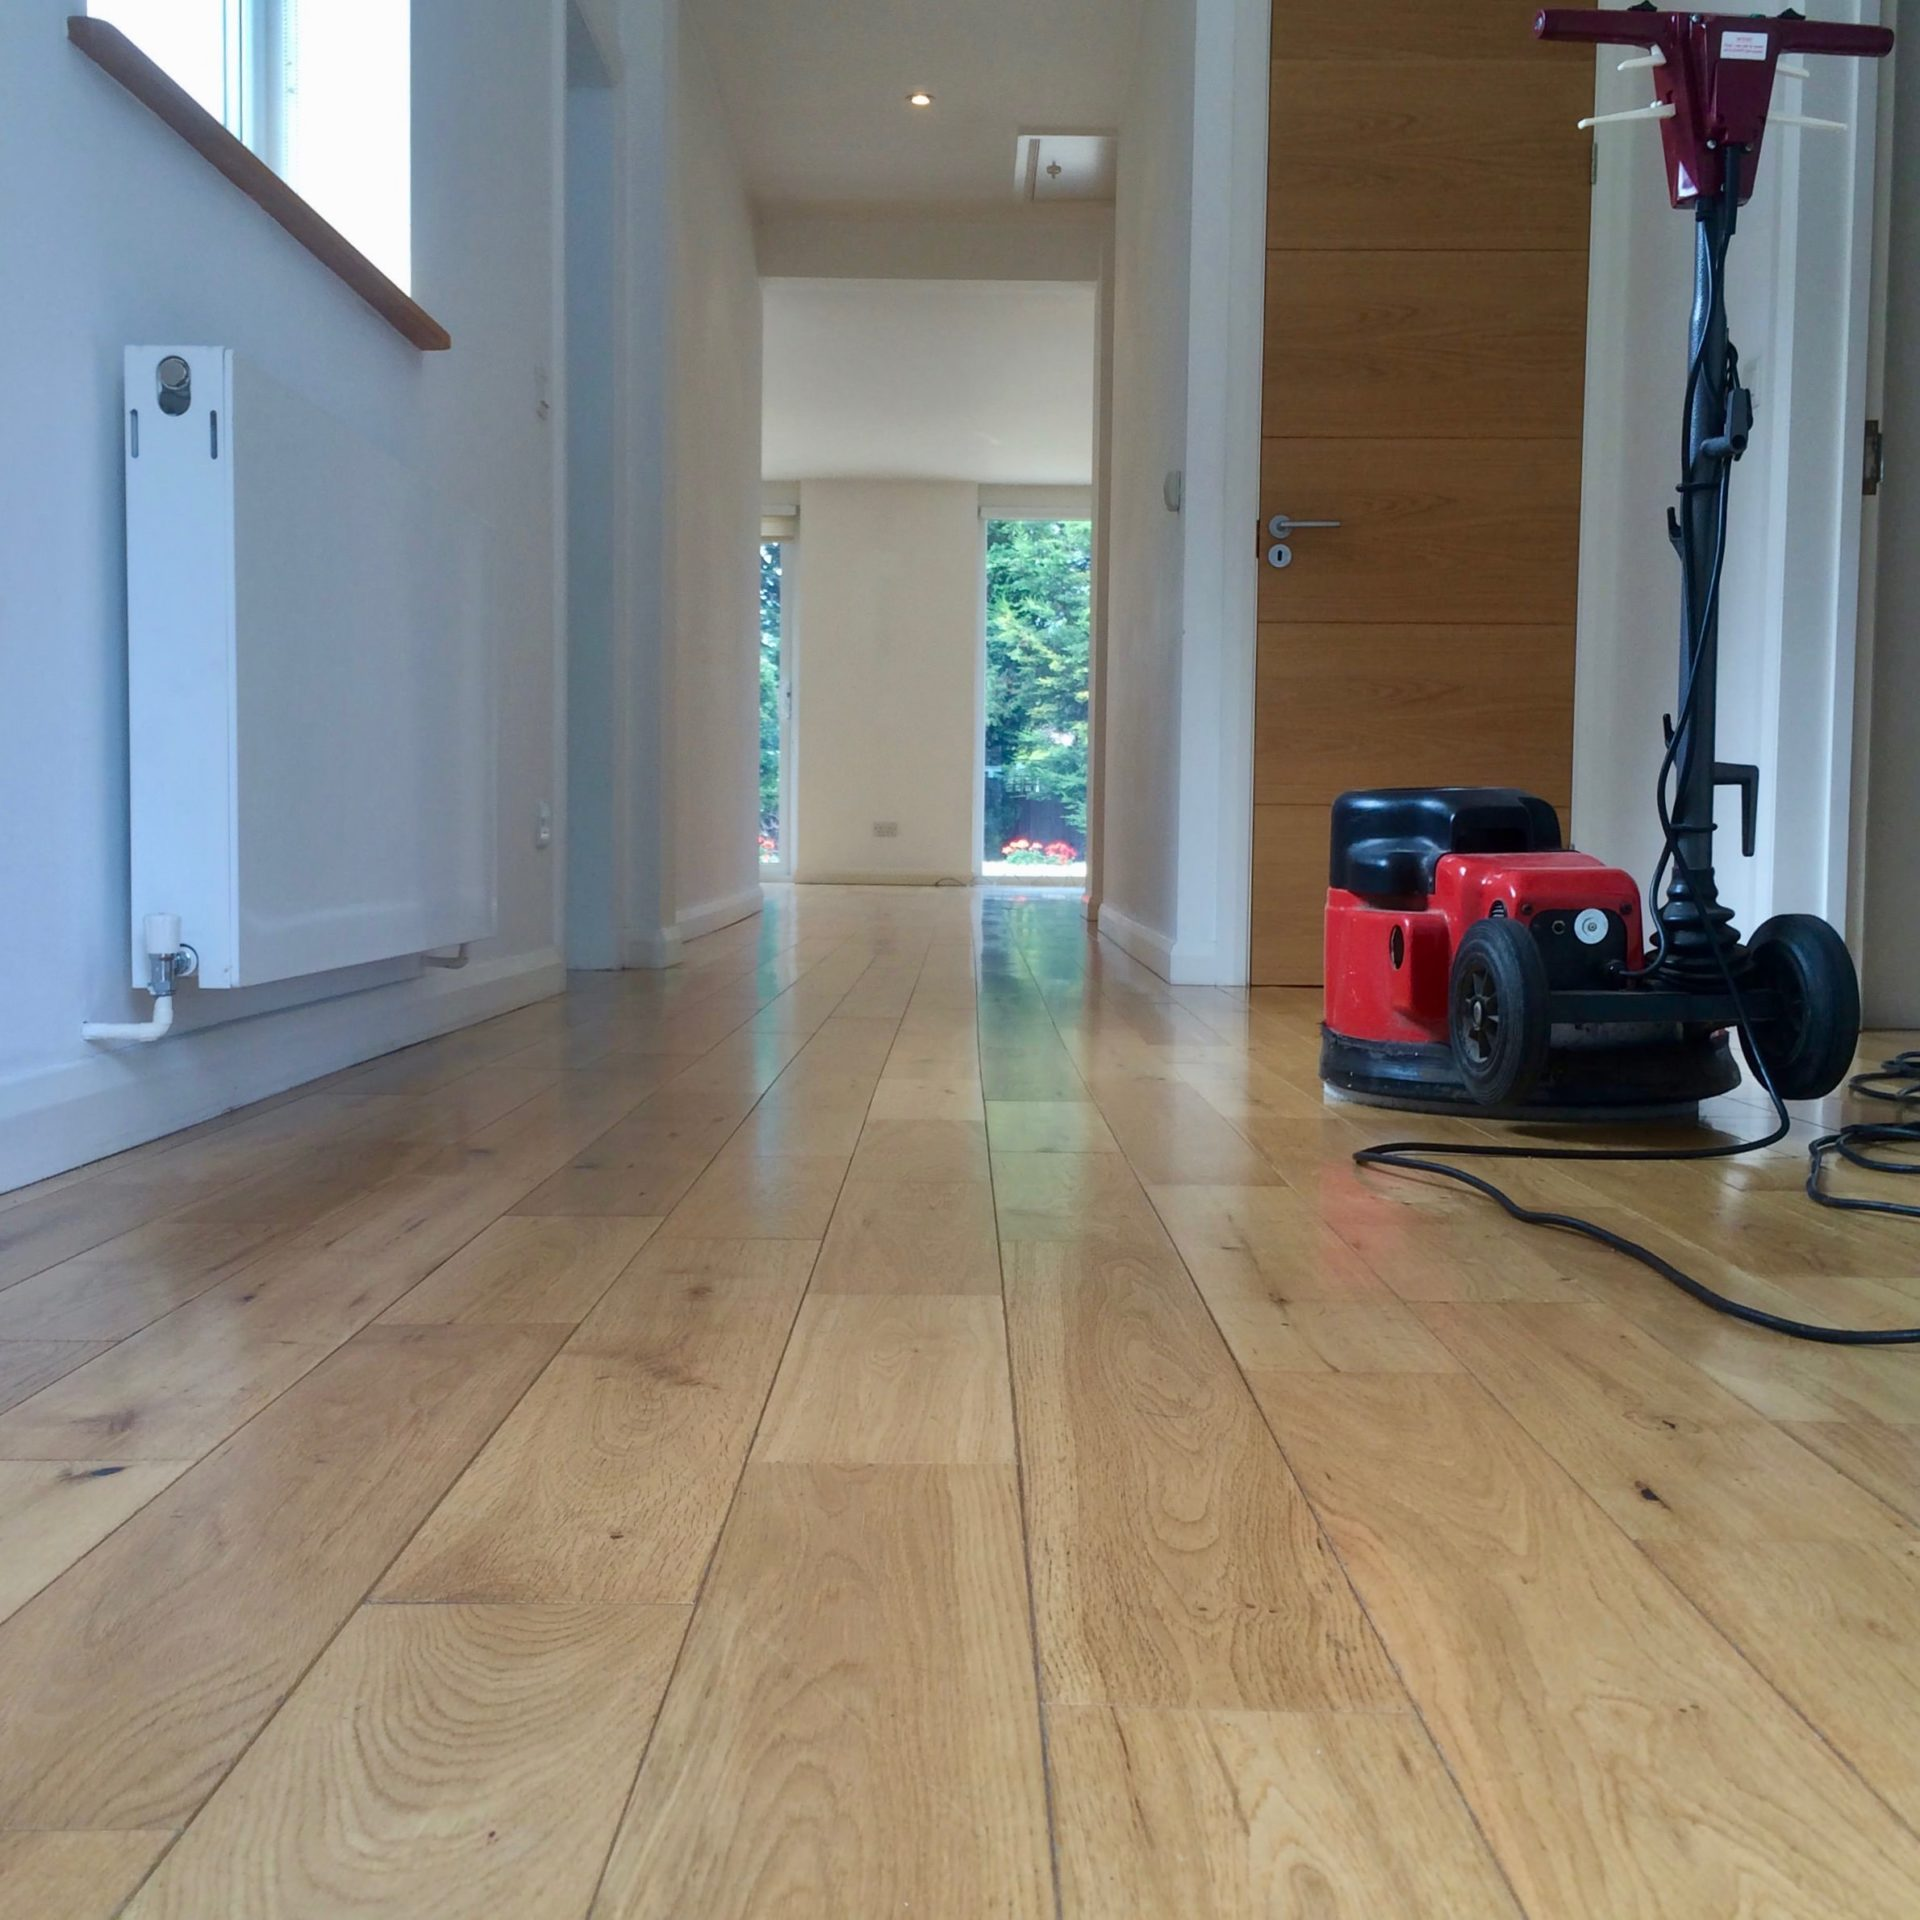 Wood Floor Cleaning Maintenance Company Brighton East